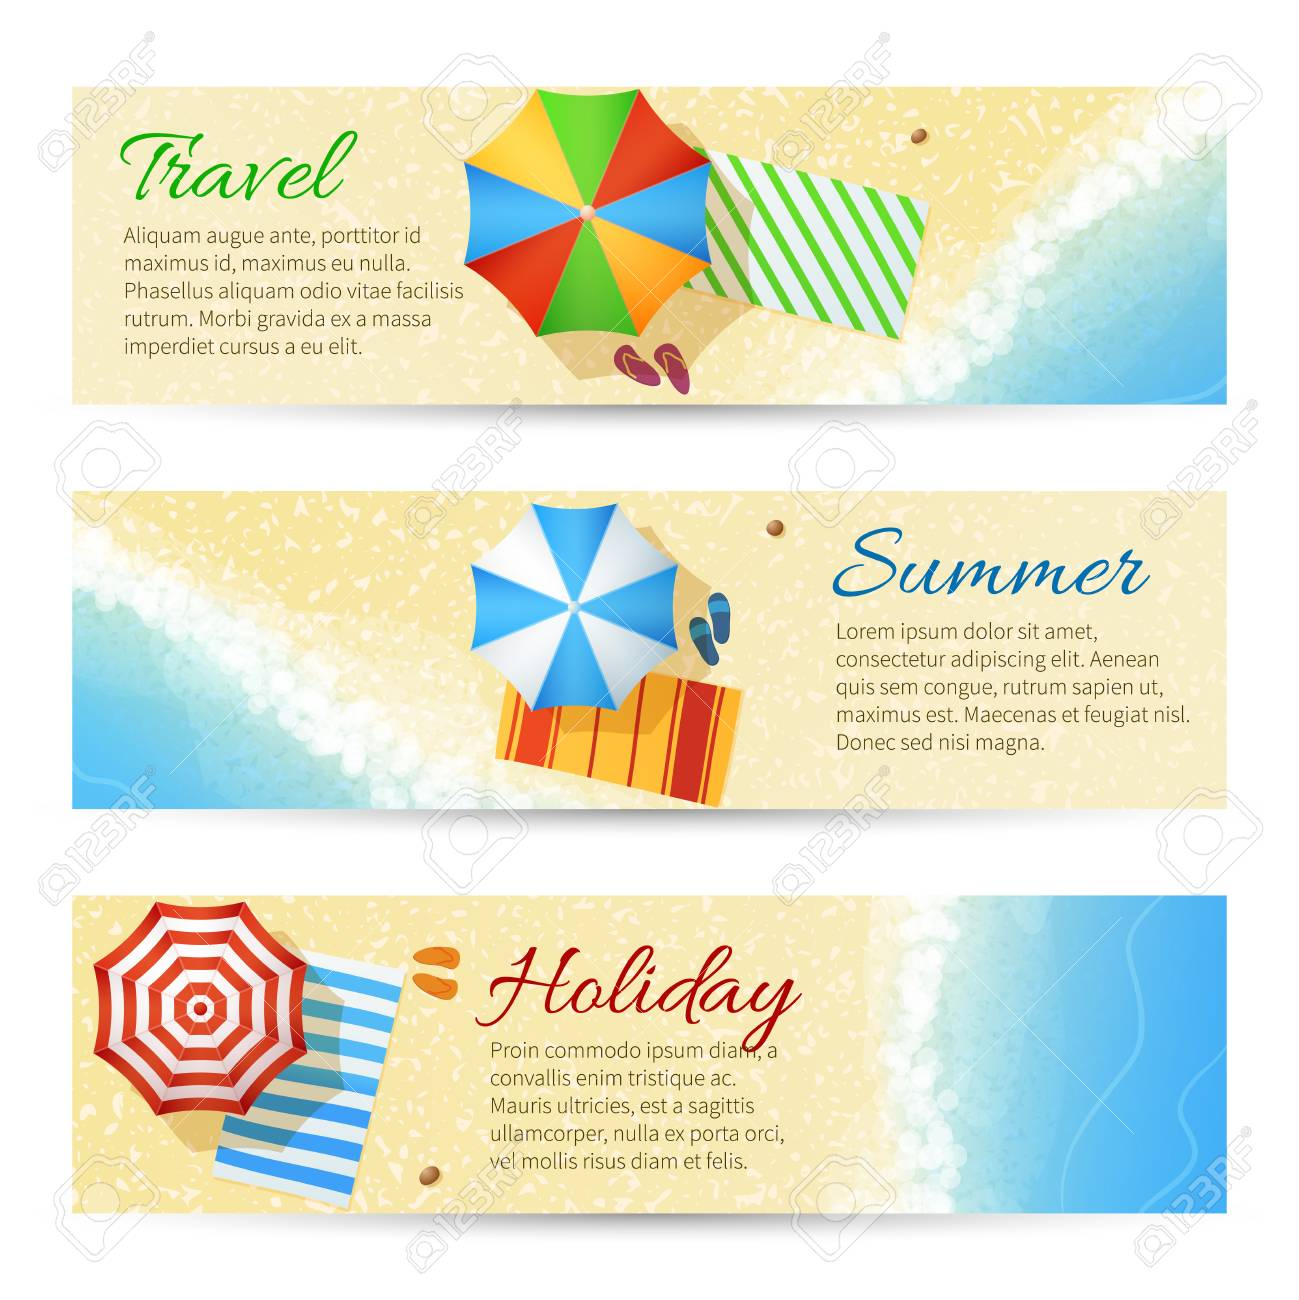 edfc37207502c Summer travel vector banners with sea beach. Umbrella with flip flops on sand  illustration Stock